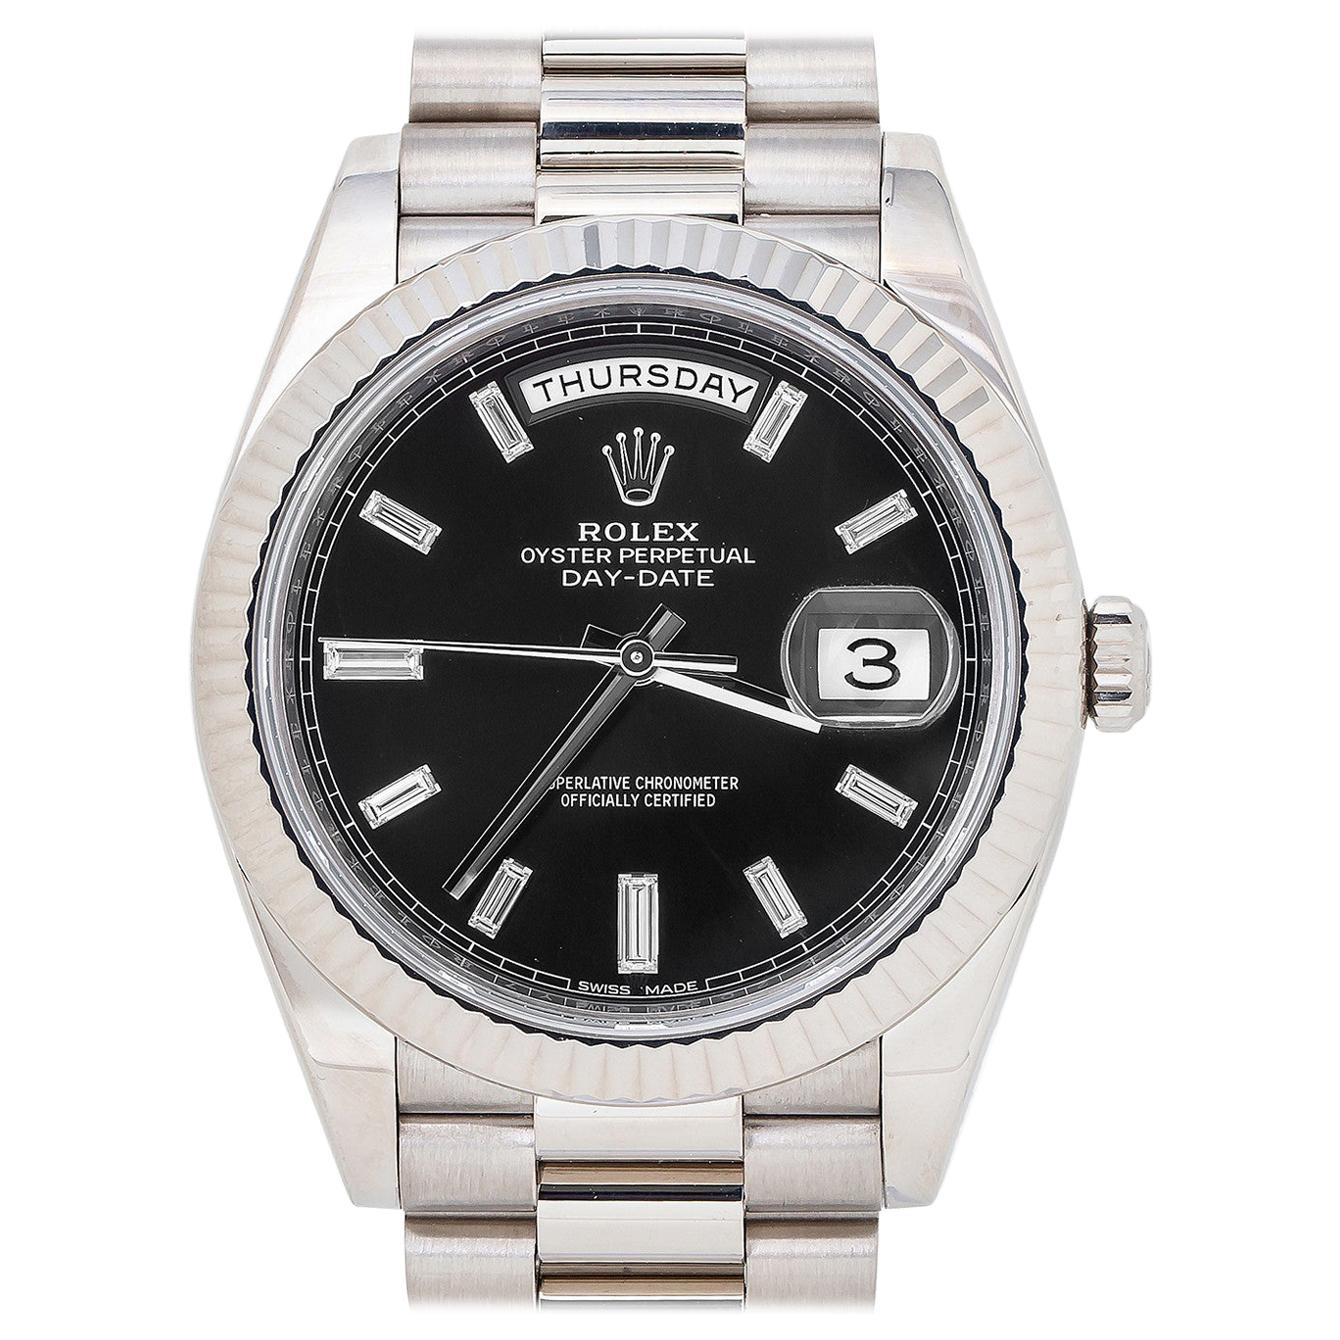 Rolex Day-Date 228239, Black Dial, Certified and Warranty